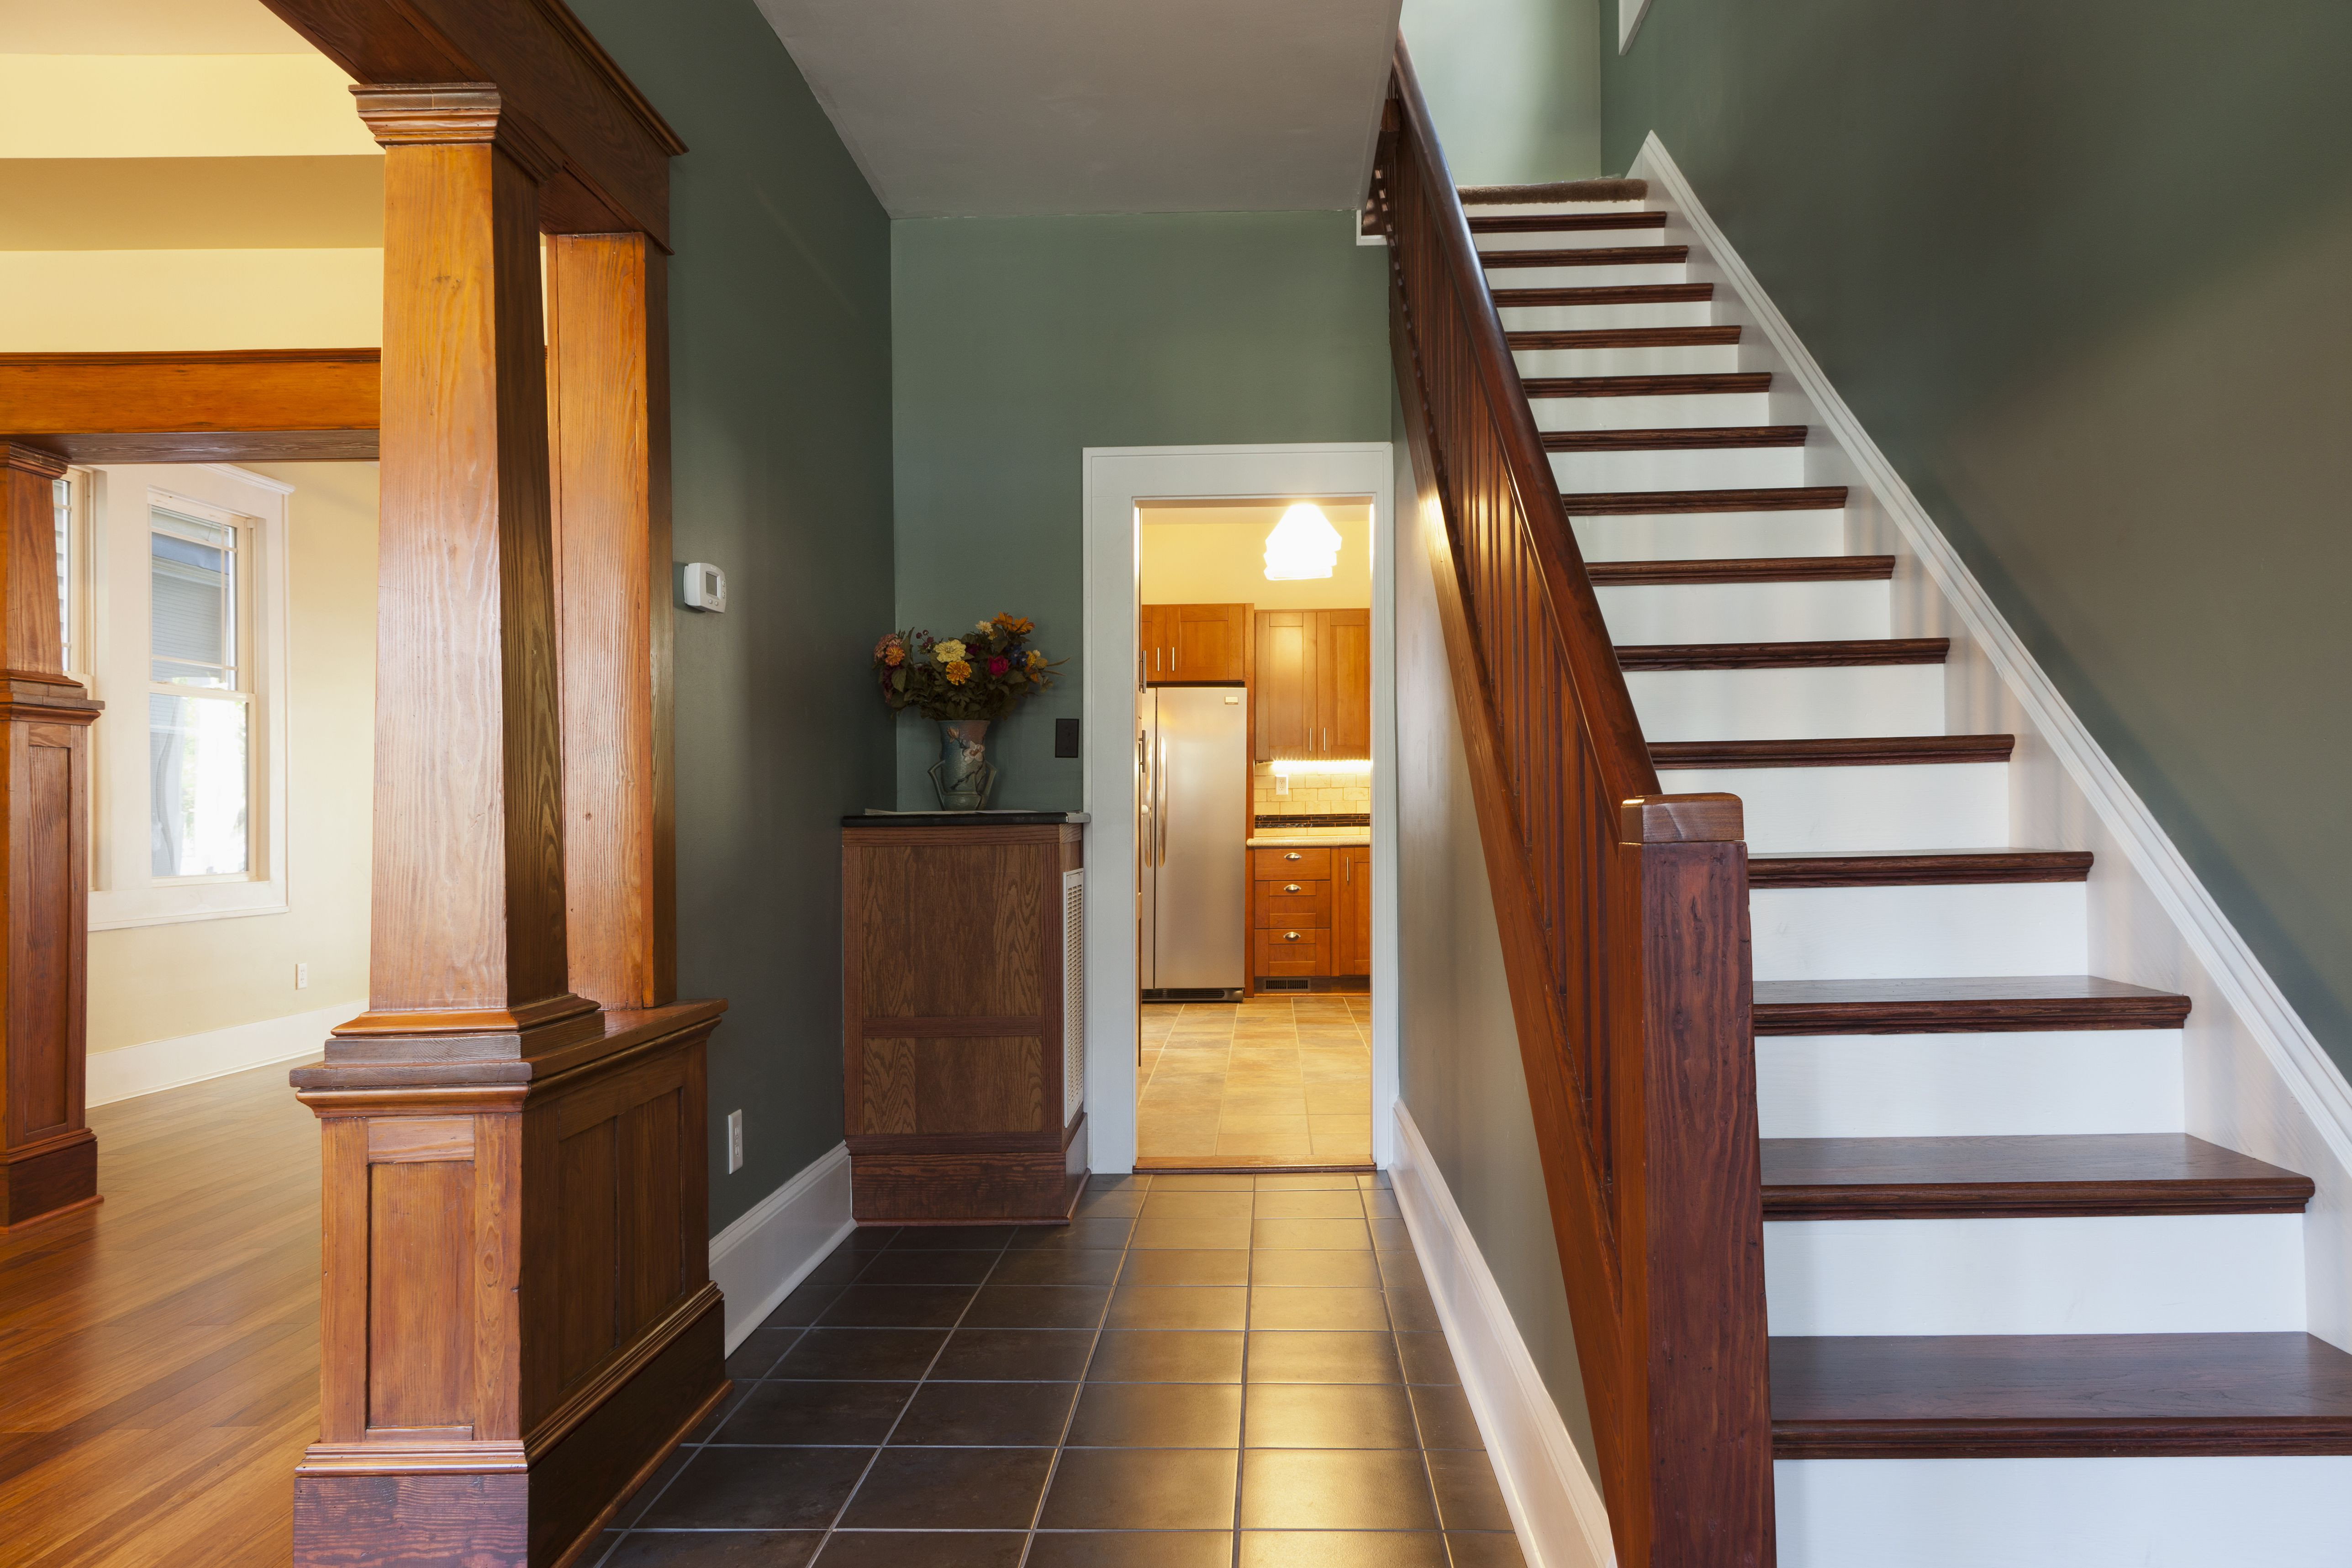 Hardwood Flooring Stairs Diy Of Guide to Basic Floor Transition Strips within Stairs and Corridor In New House 463247115 5a845ccffa6bcc0036b7c720